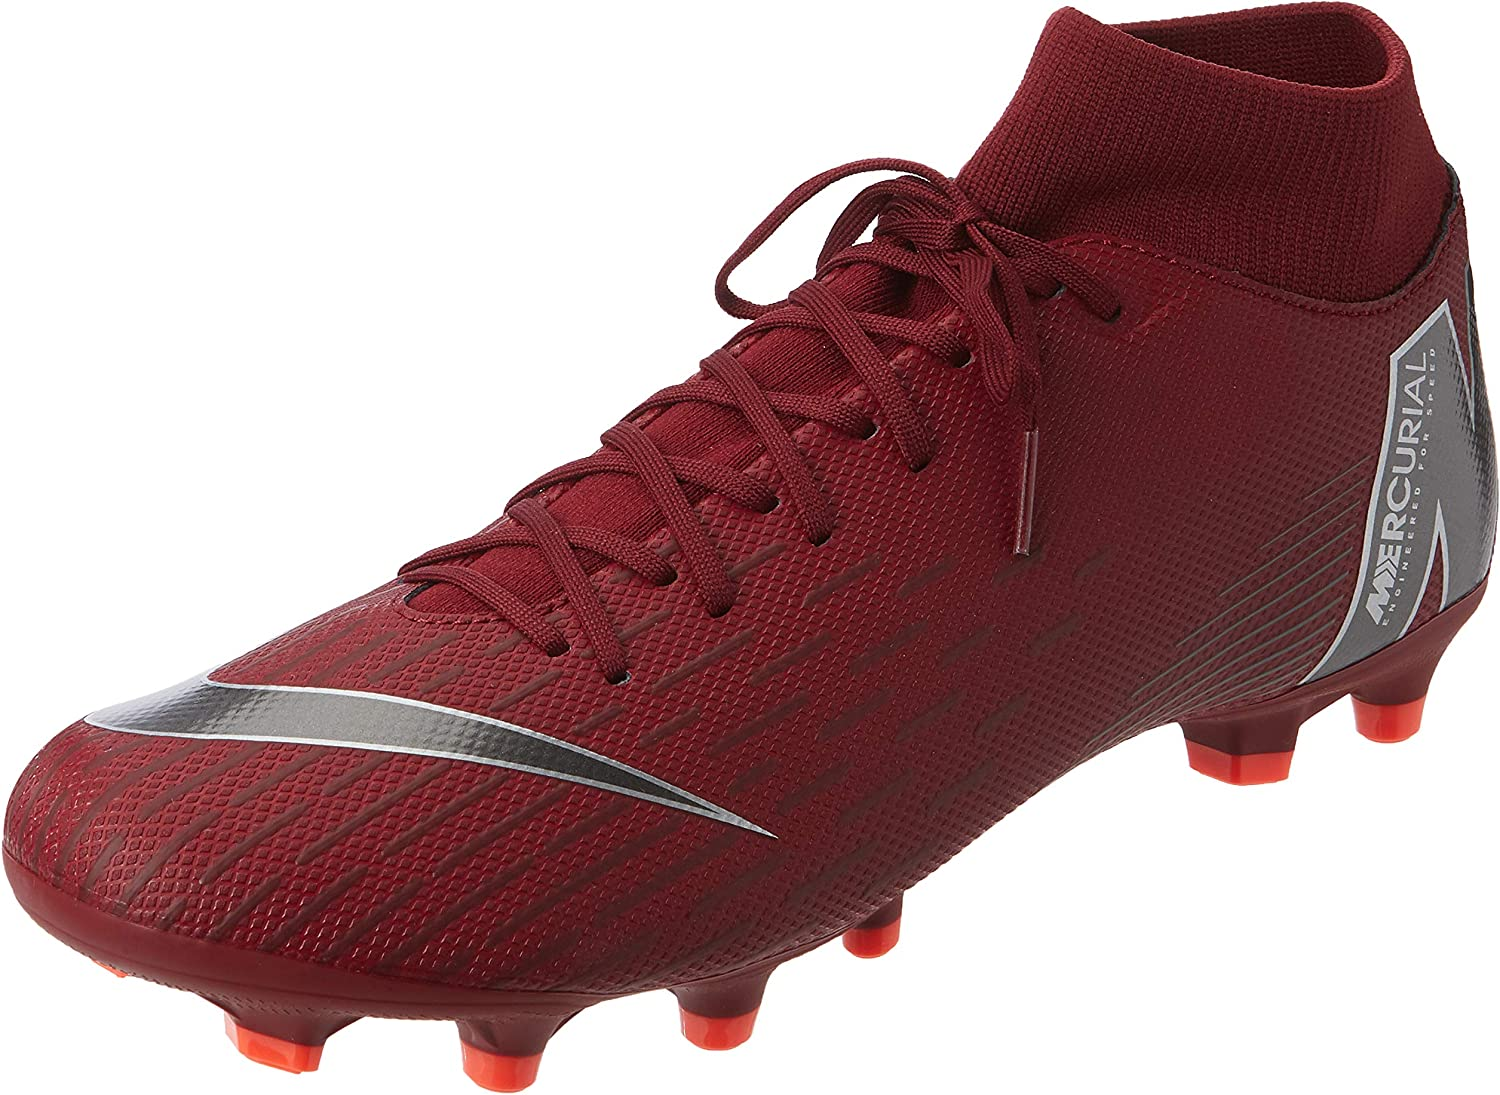 Nike Mercurial Superfly 6 Academy MG Soccer Cleat (Team Red) (Men's 8 Women's 9.5)